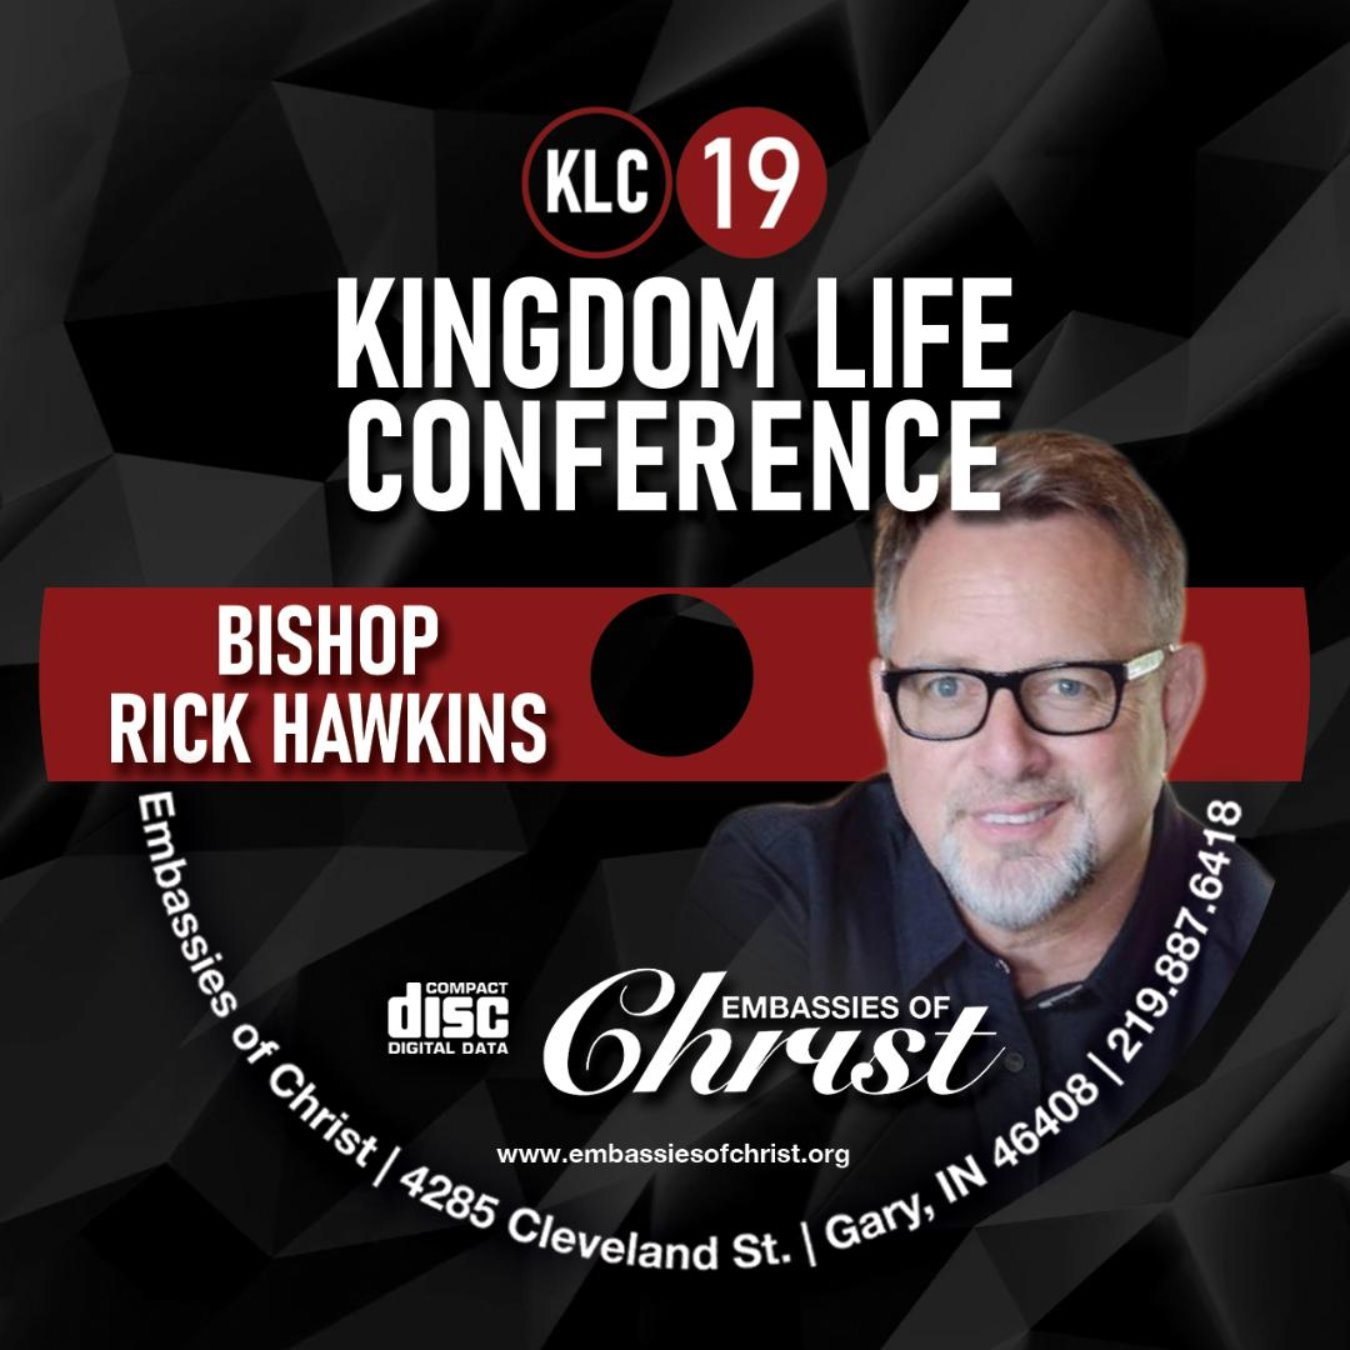 Bishop Rick Hawkins